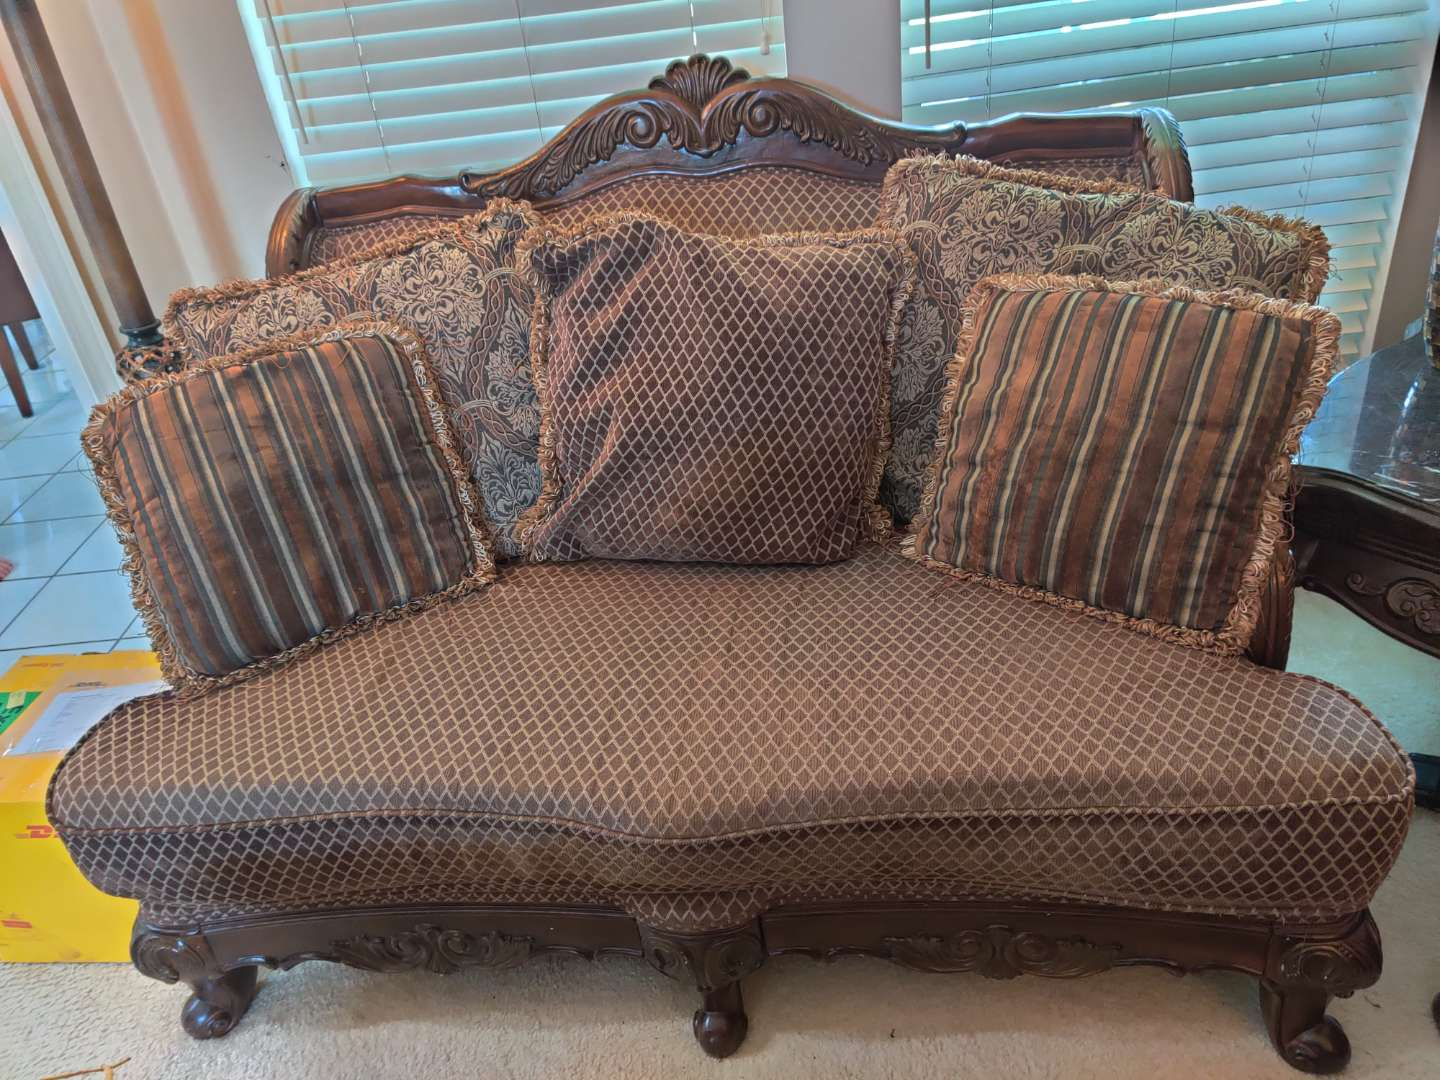 #2 heavly carved wood loveseat with pillows very nice